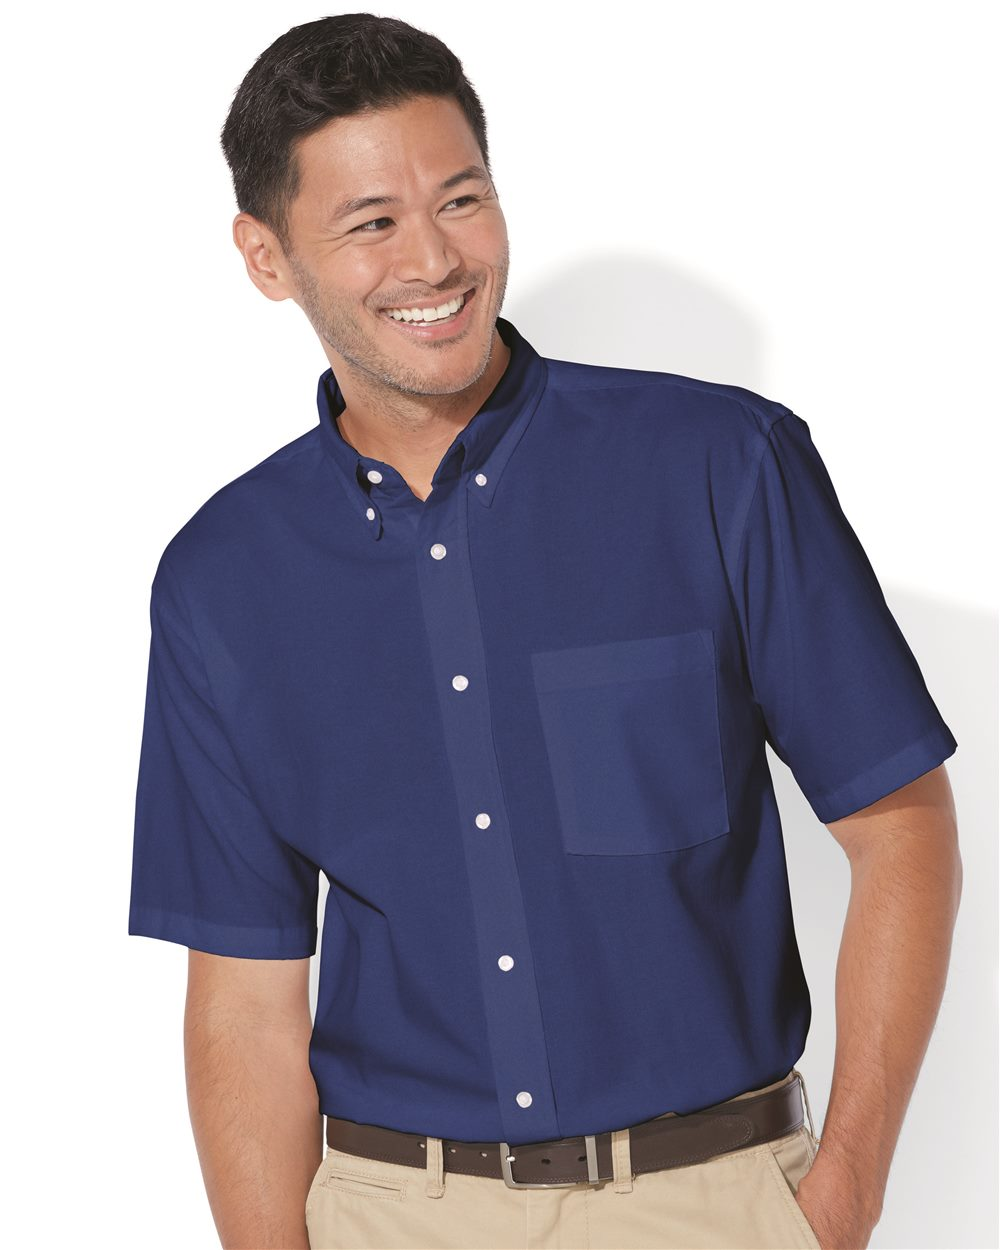 FeatherLite 0231 Short Sleeve Oxford Shirt